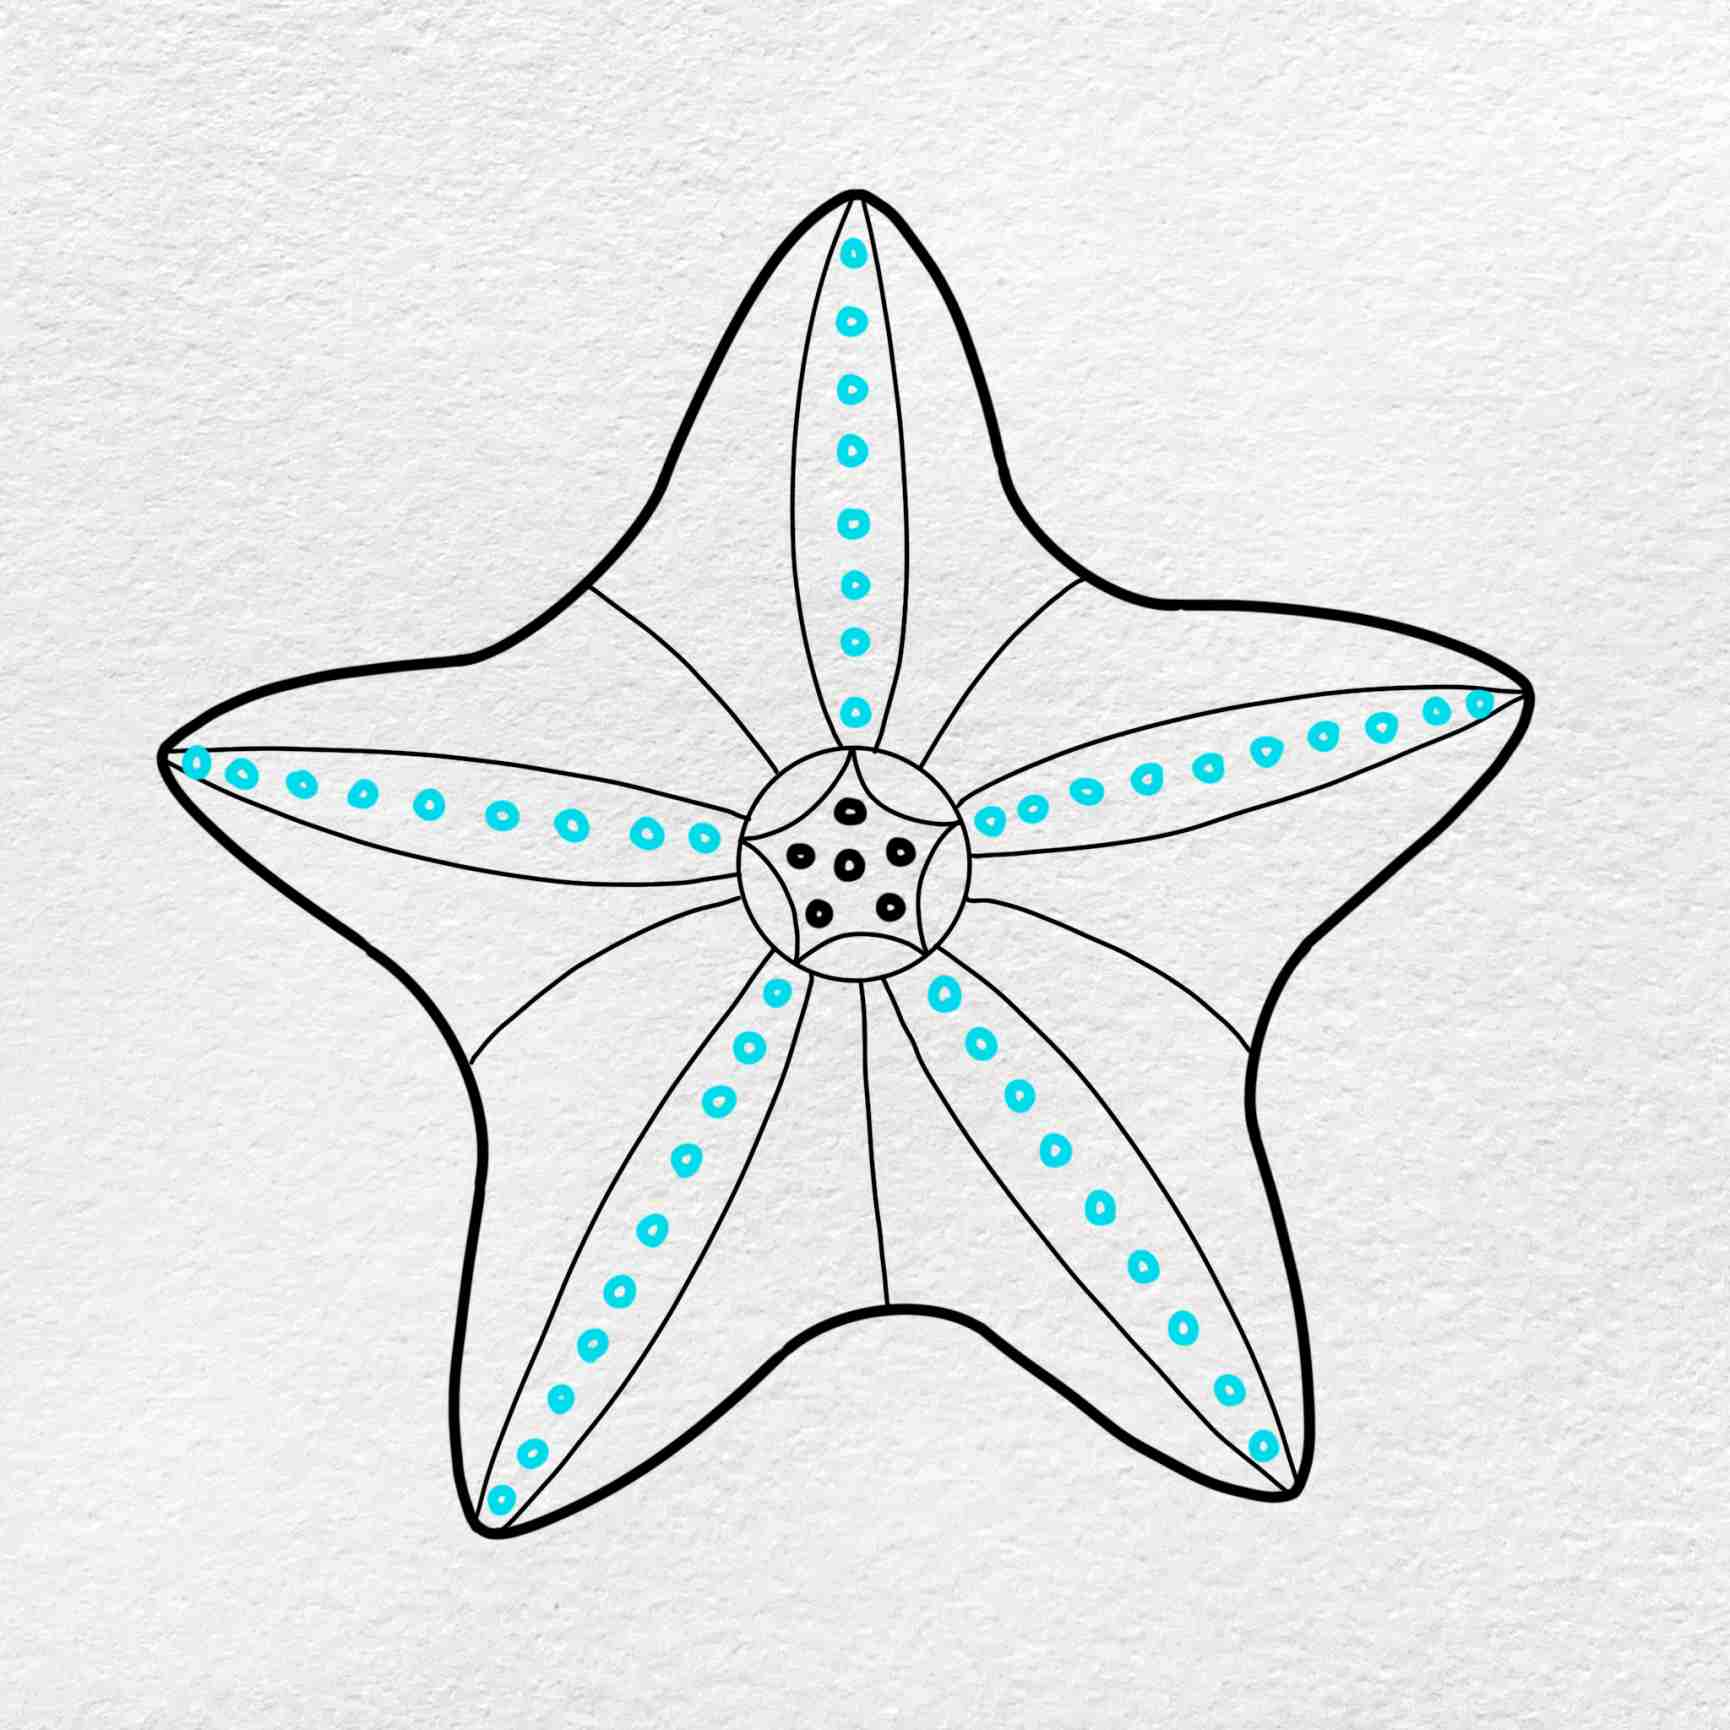 How To Draw A Starfish: Step 5